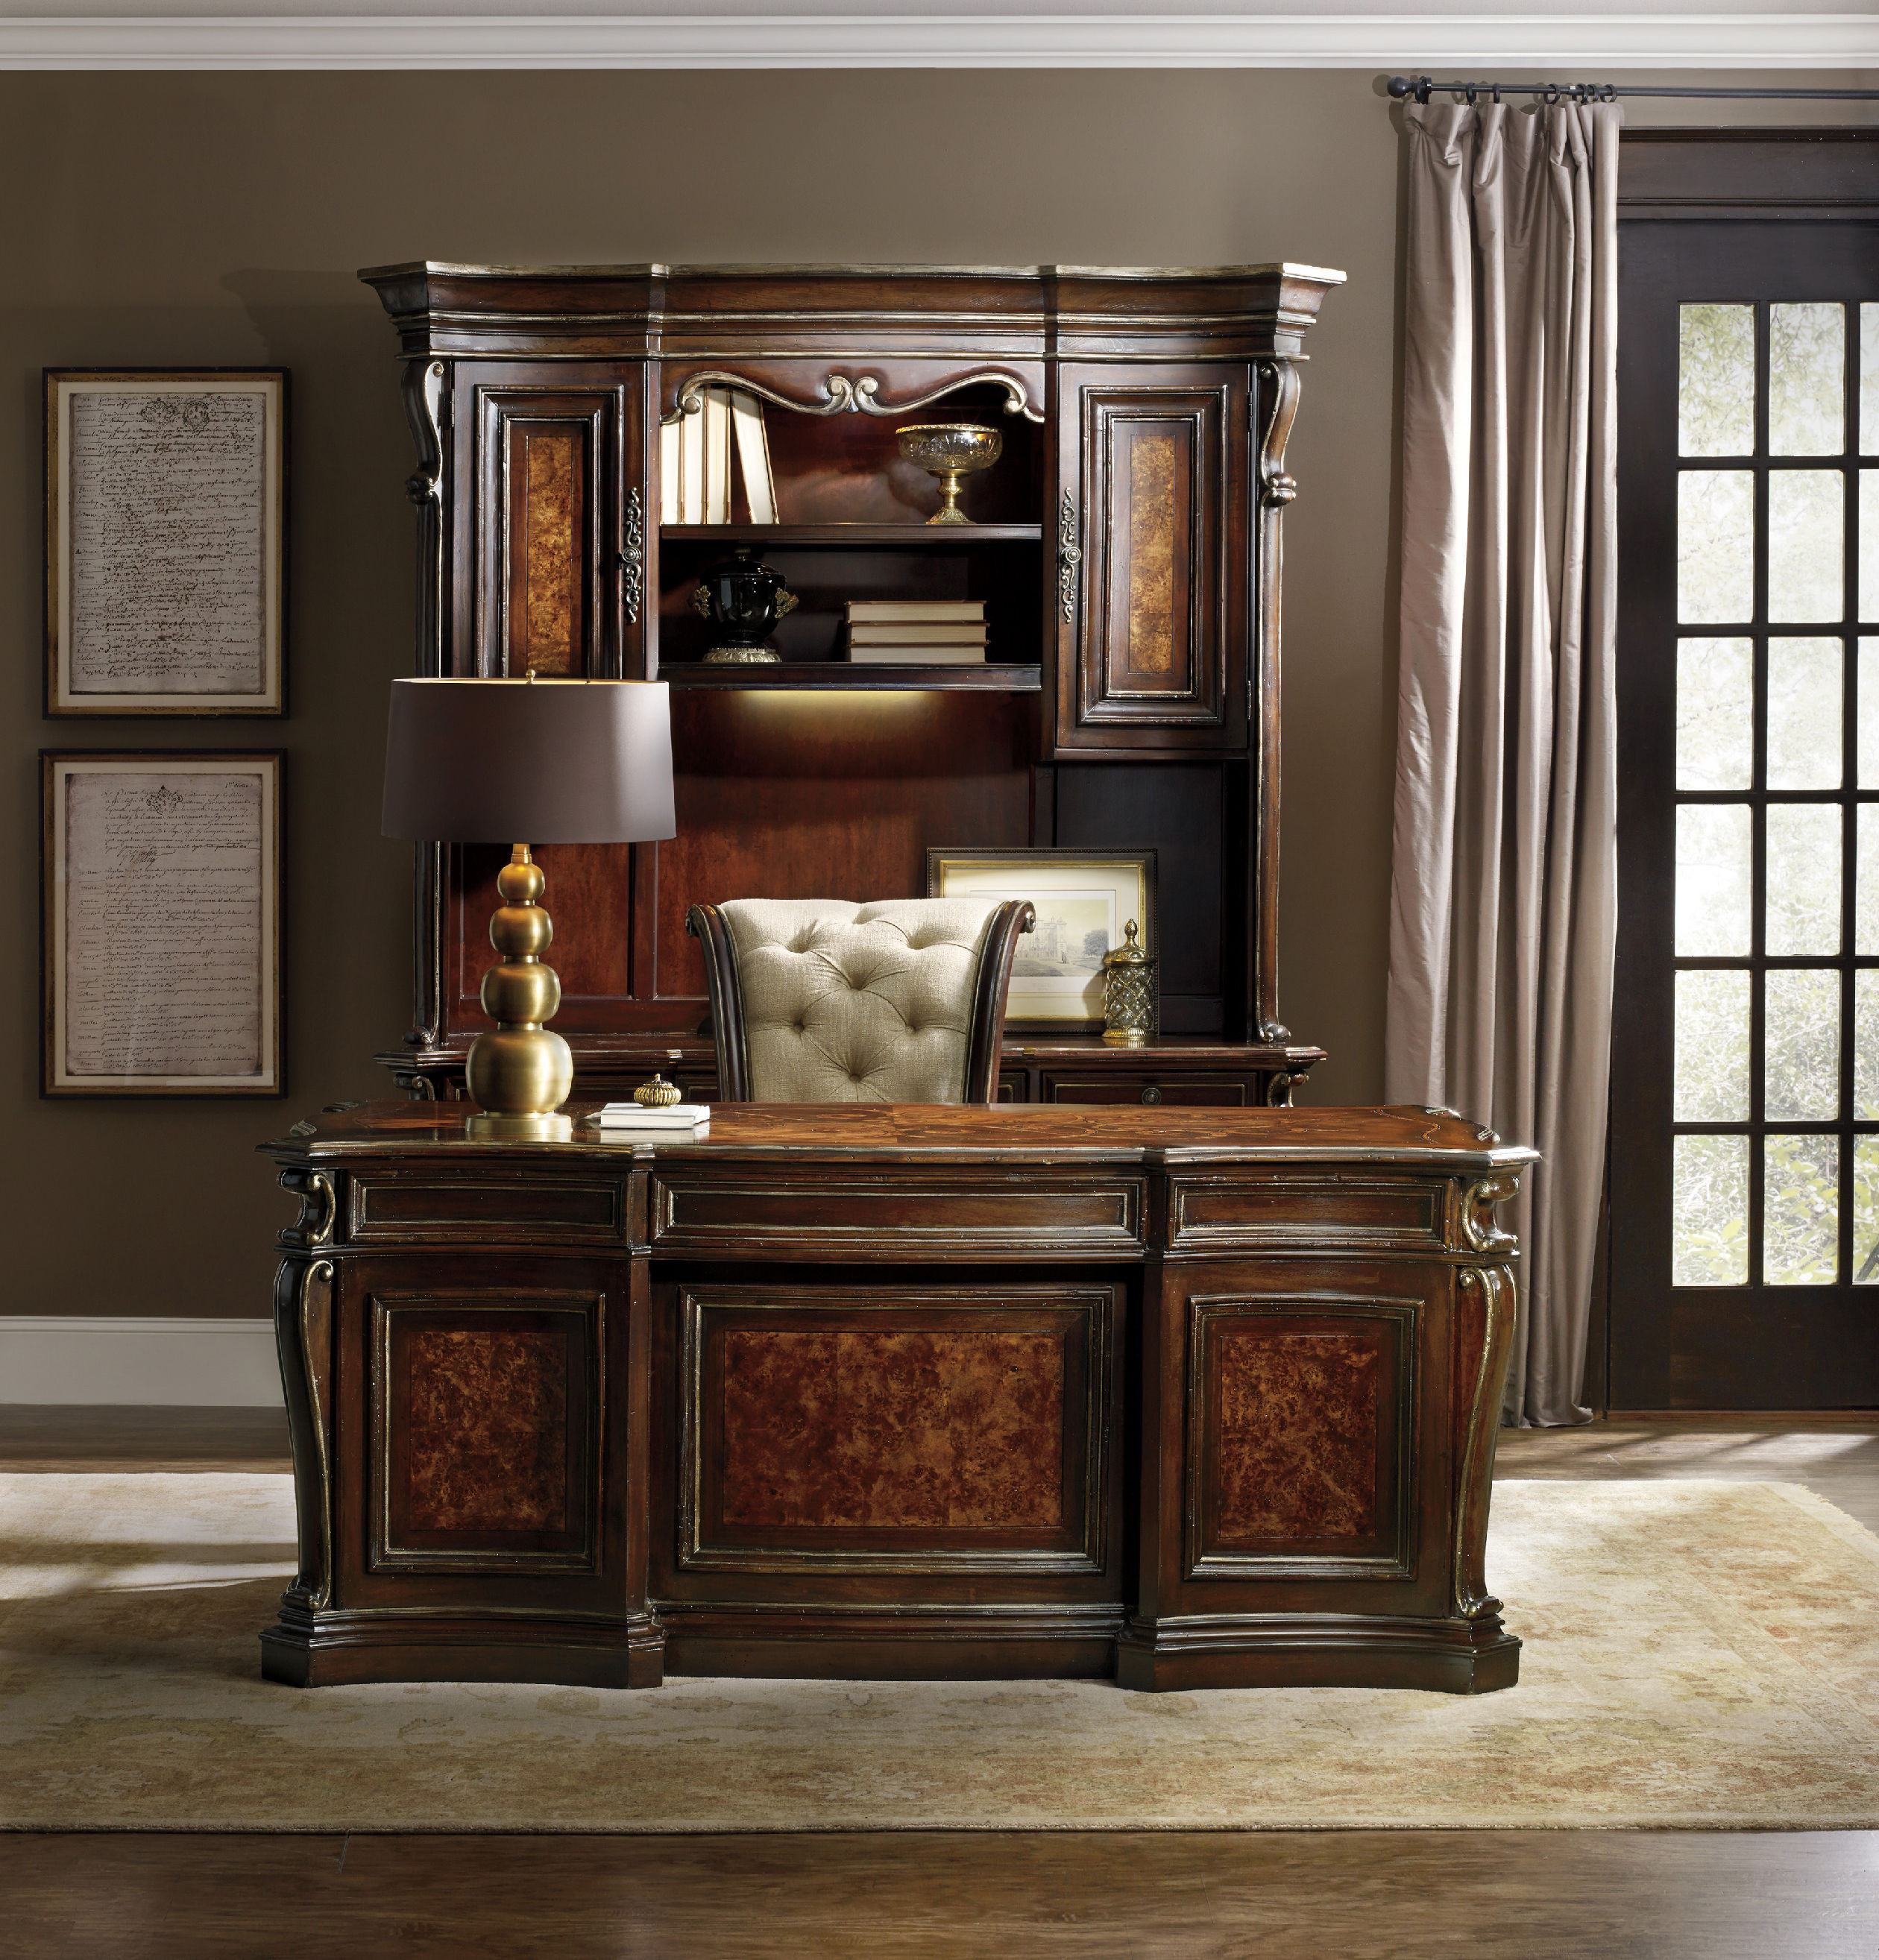 Best ideas about Hooker Office Furniture . Save or Pin Hooker Furniture Home fice Grand Palais Executive Desk Now.